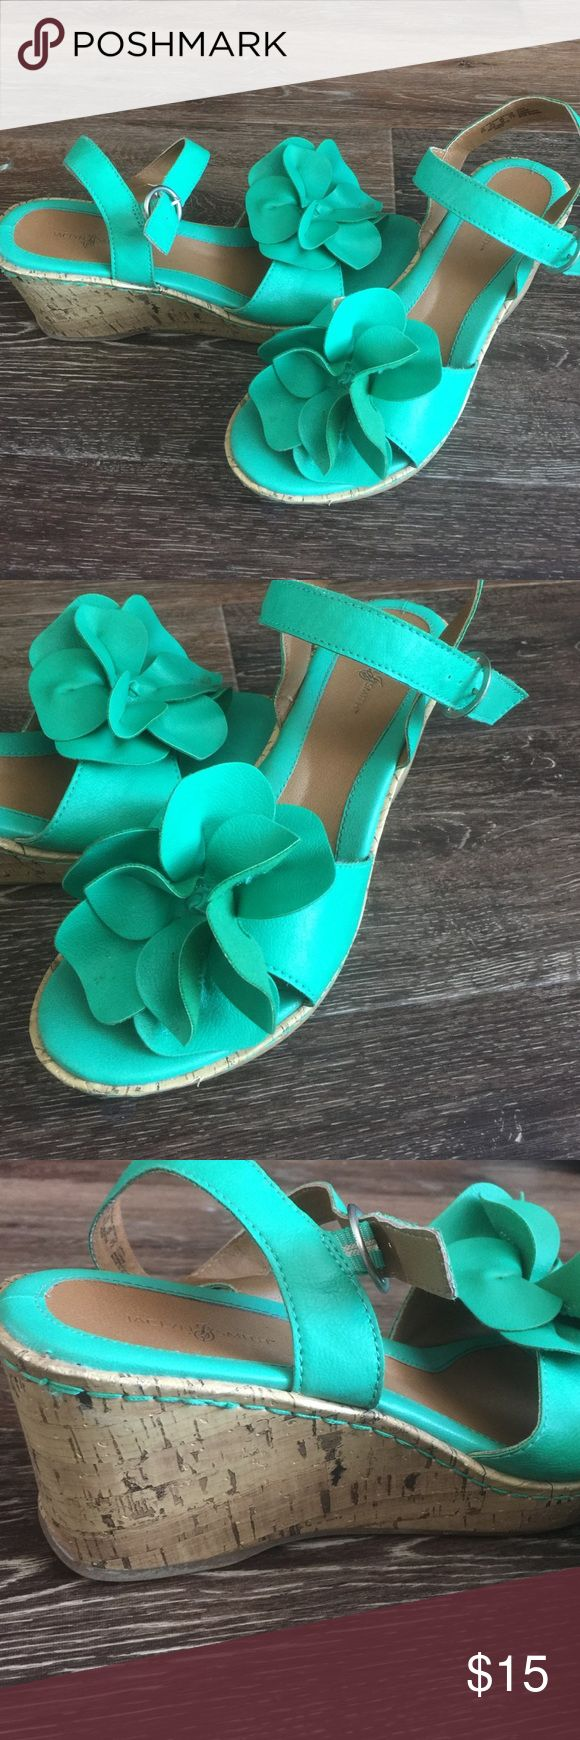 Jaclyn Smith wedges. Worn once. Teal green wedges. Flower detail on toe. Jaclyn Smith Shoes Wedges